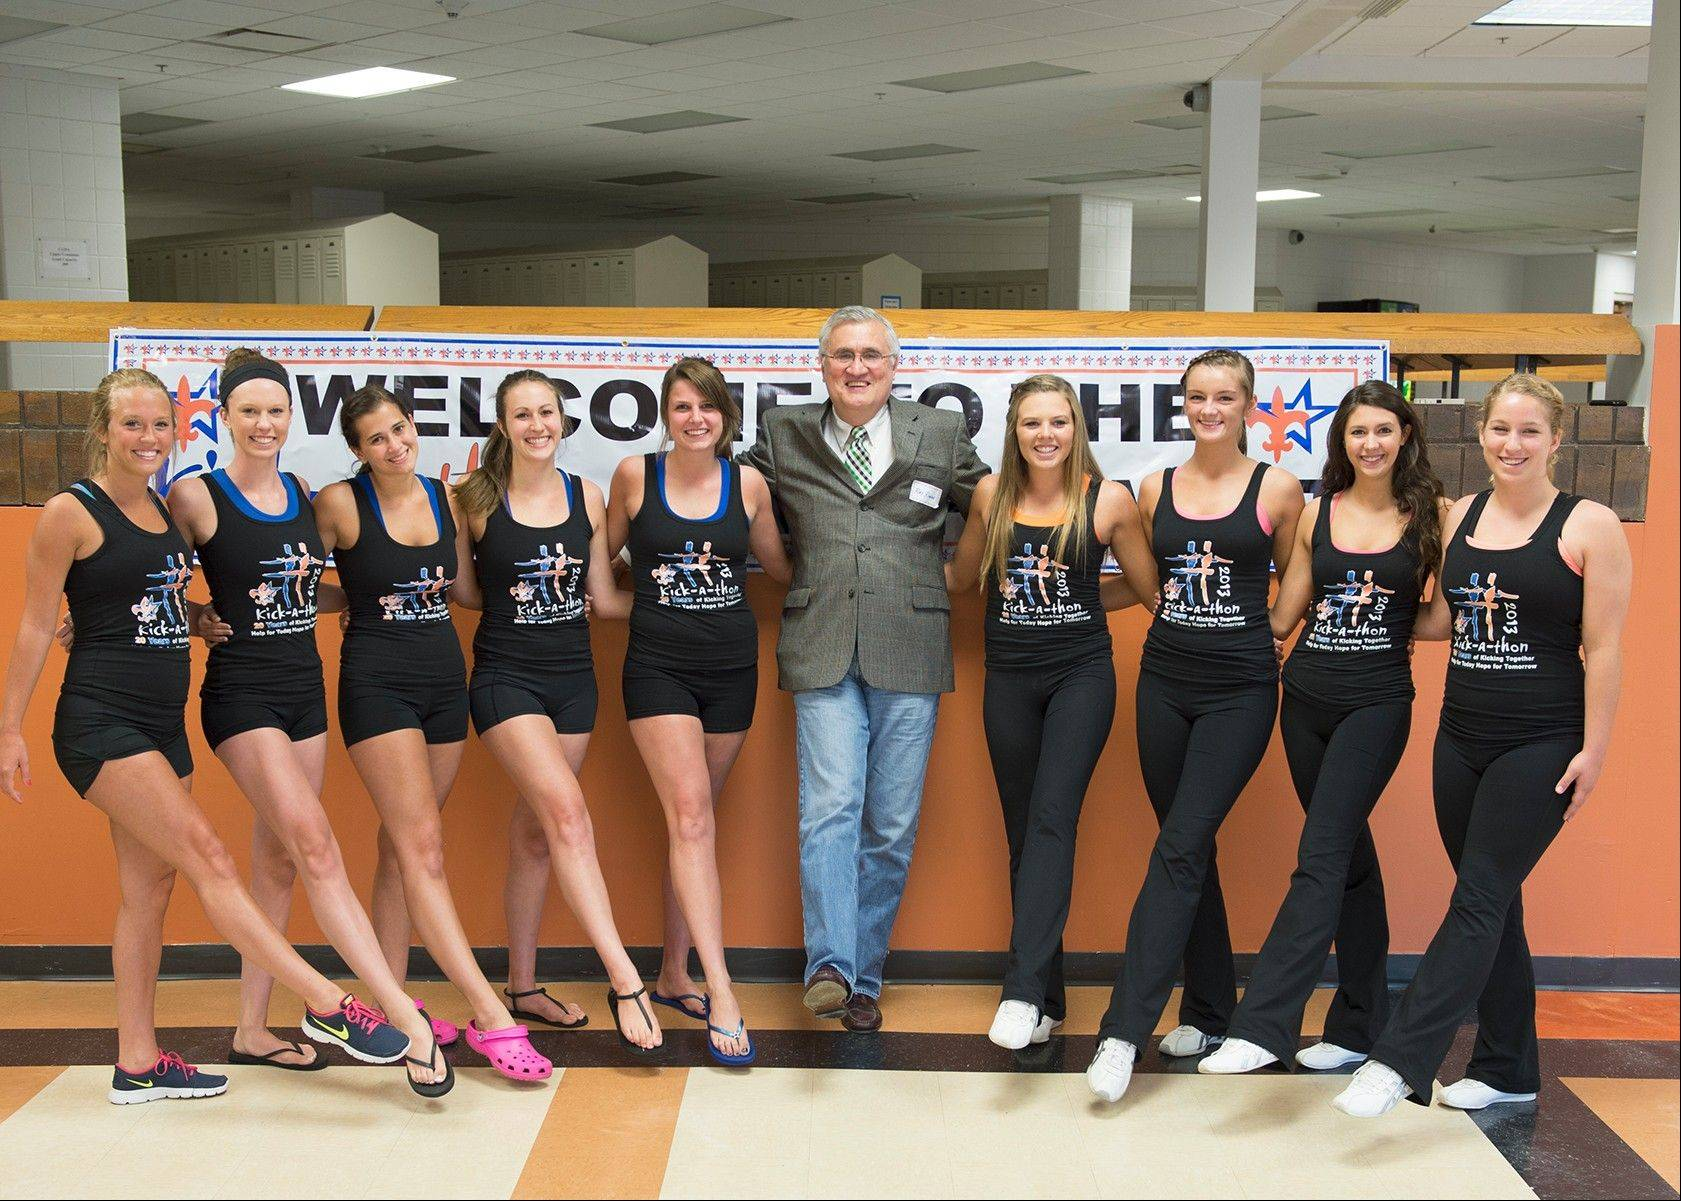 St. Charles Mayor Ray Rogina is joined by, from left, St. Charles North drill team seniors Alison Meisenheimer, Jamie Beaulieu, MaryKate Purcell, Kassidy Ams and Lexi Artman, and St. Charles East drill team seniors Tara Willing, Rhyleigh Keef, Rachael Manley and Maddie Culbertson.